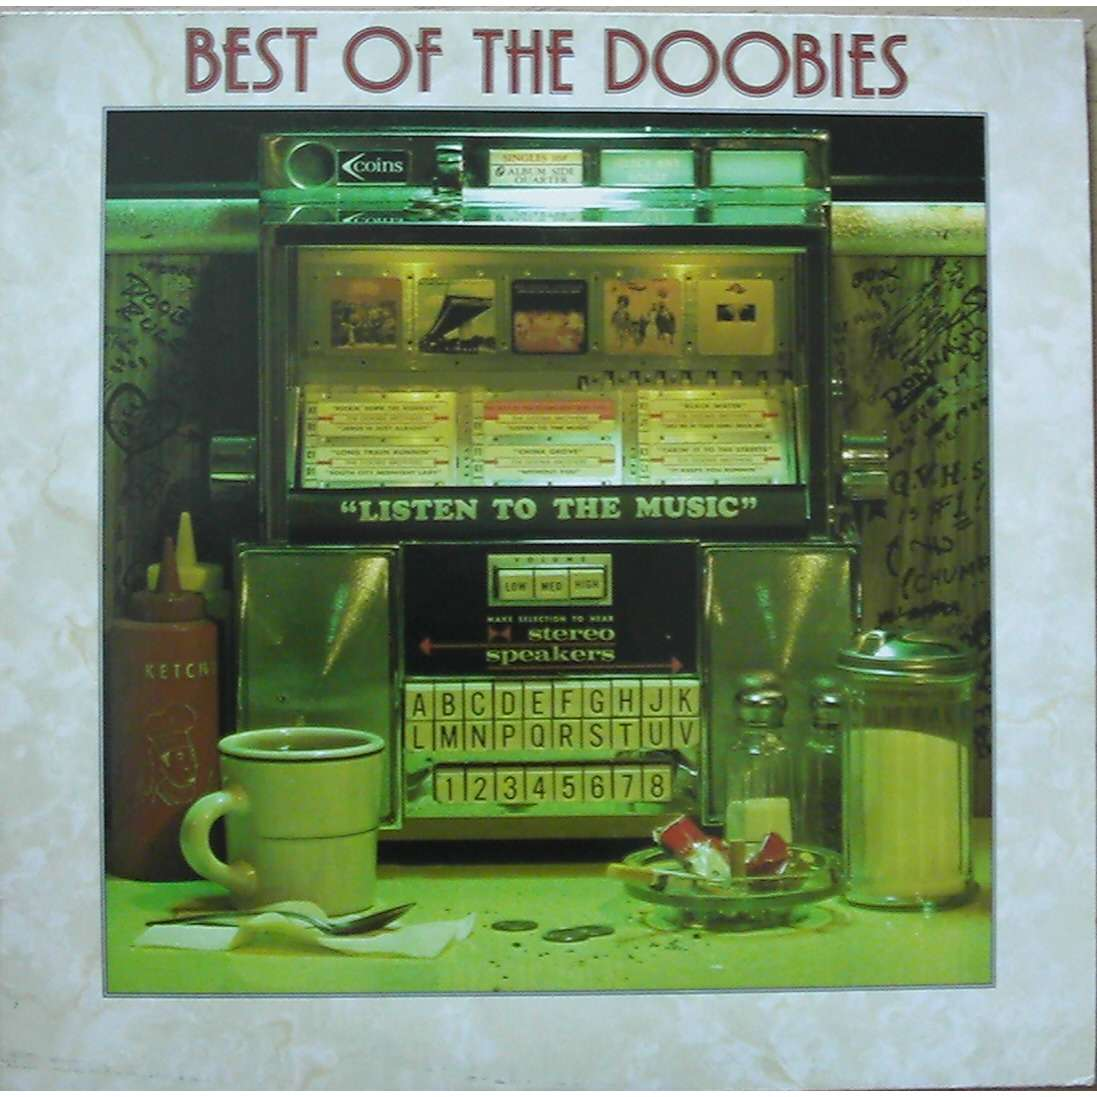 Best Of The Doobies Doobie Brothers | sympathy for the